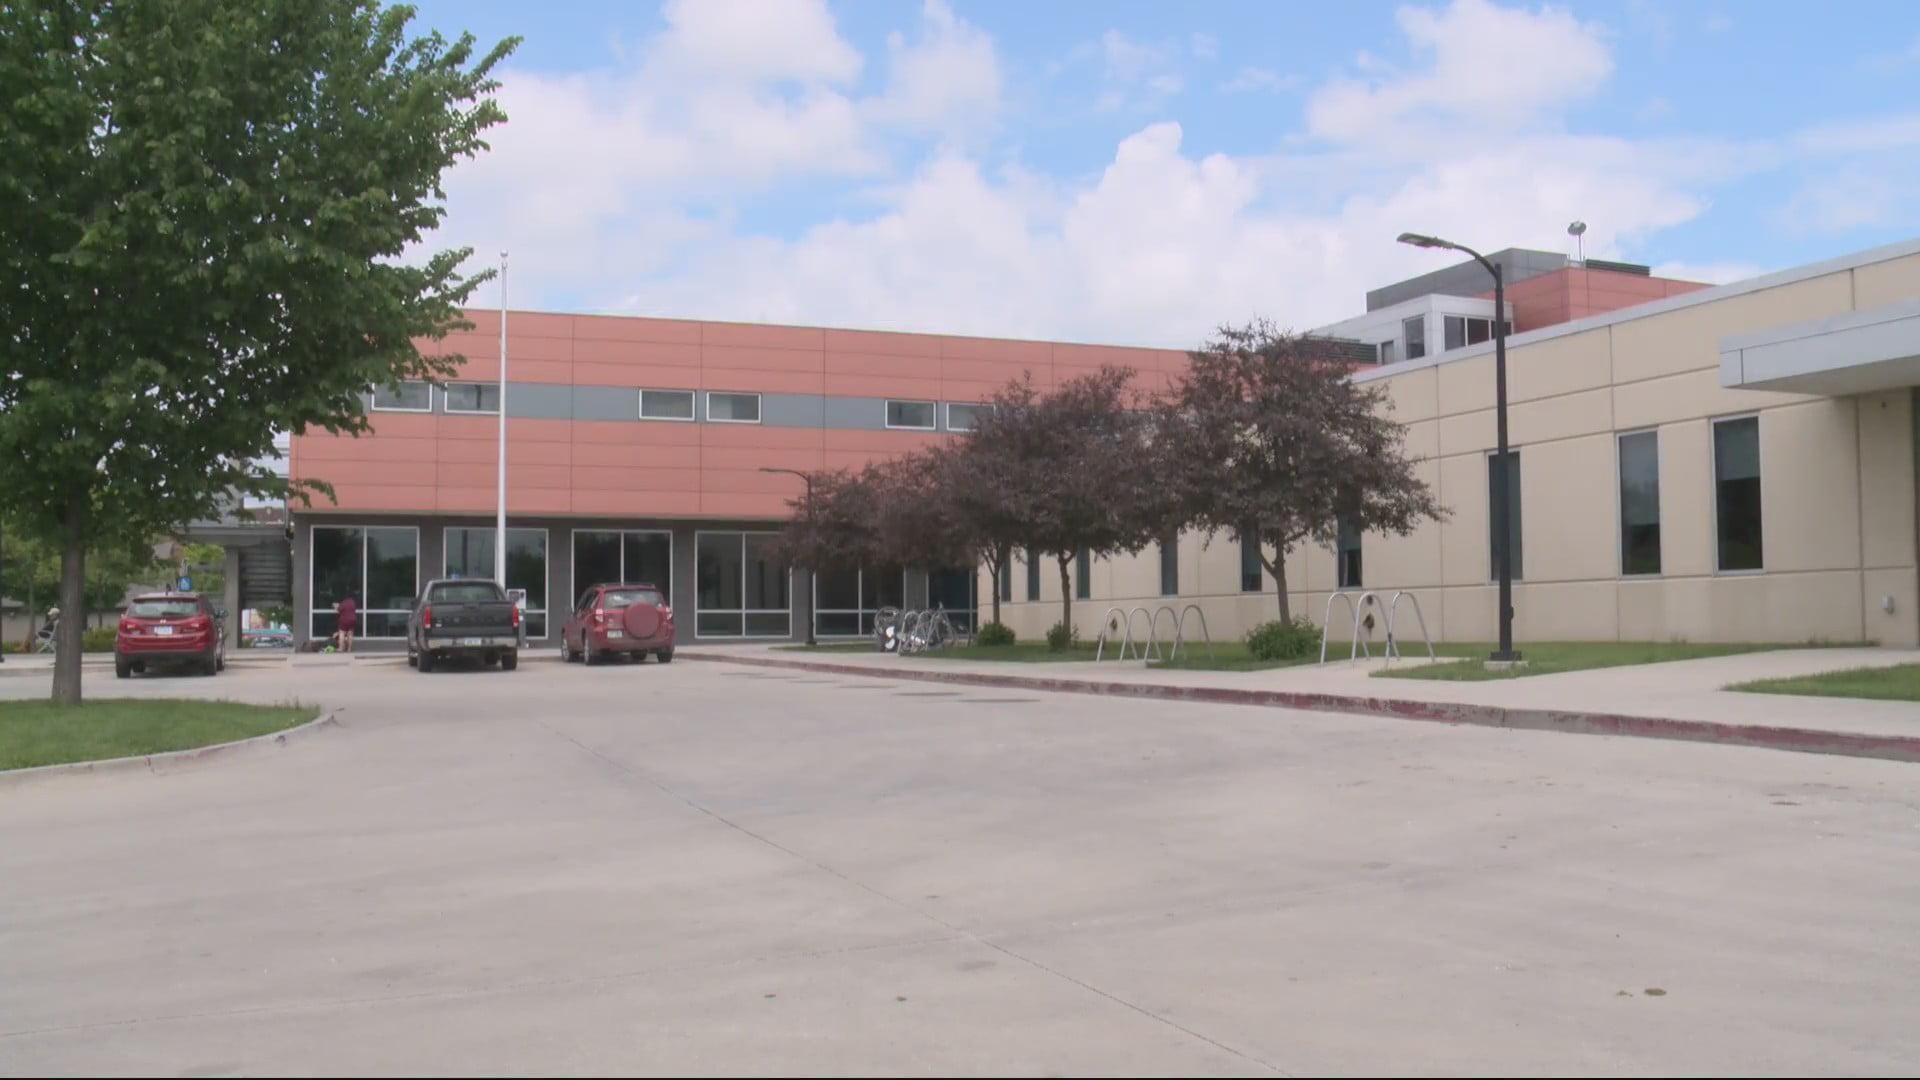 Central Iowa Homeless Shelter Prepares for Influx as End of Eviction Moratorium Looms 1